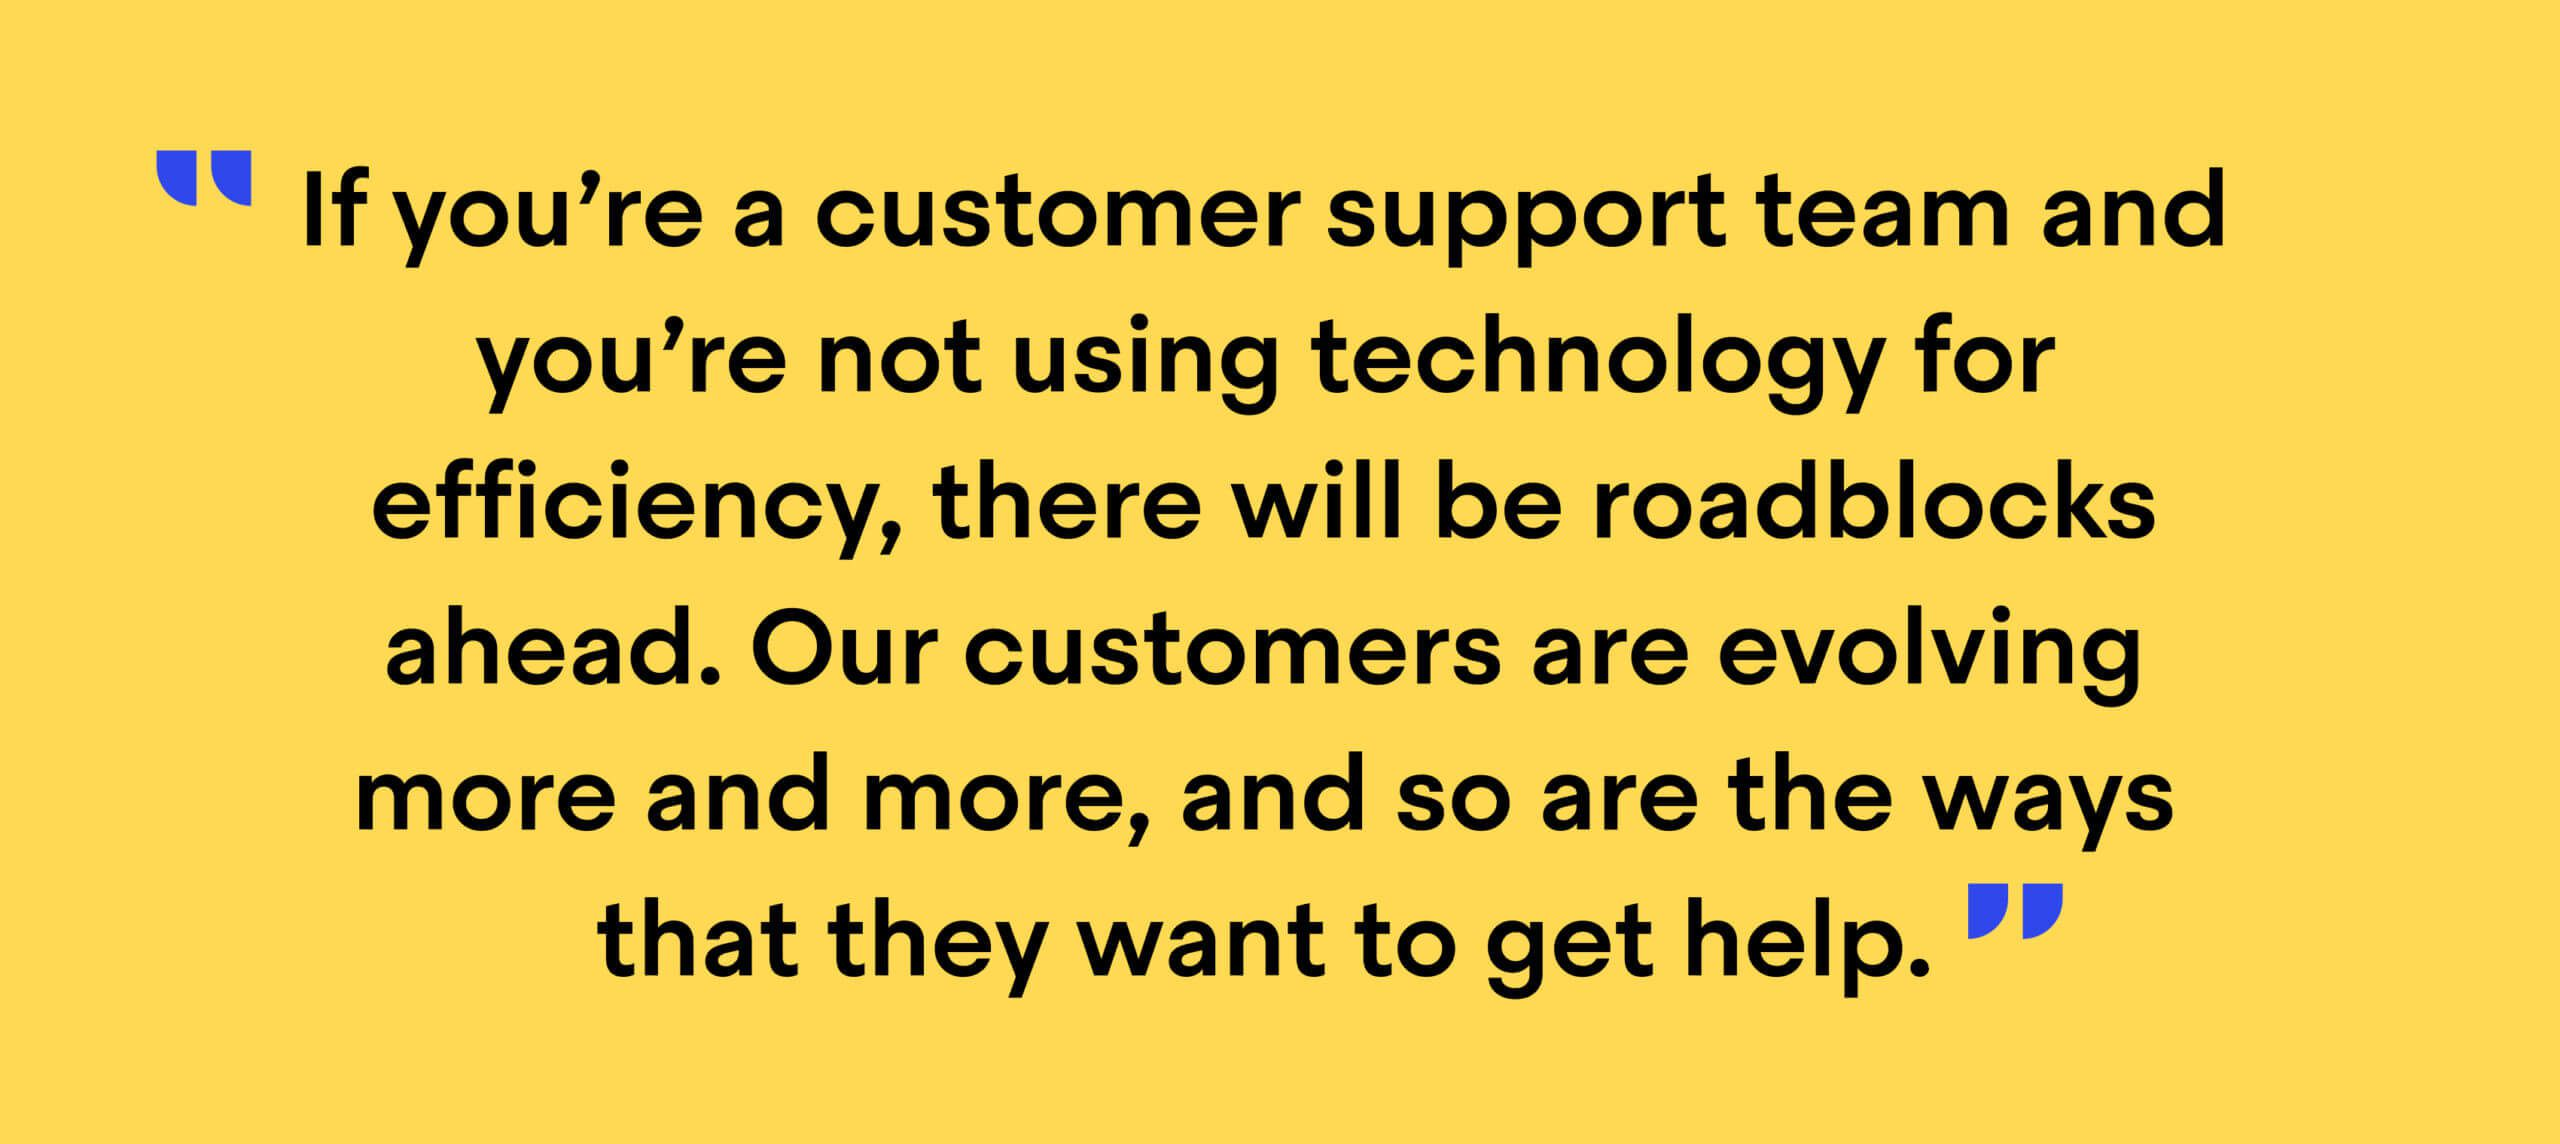 """Quote from Jean-Bernard Baptiste: """"If you're a customer support team and you're not using technology for efficiency, there will be roadblocks ahead. Our customers are evolving more and more, and so are the ways that they want to get help."""""""